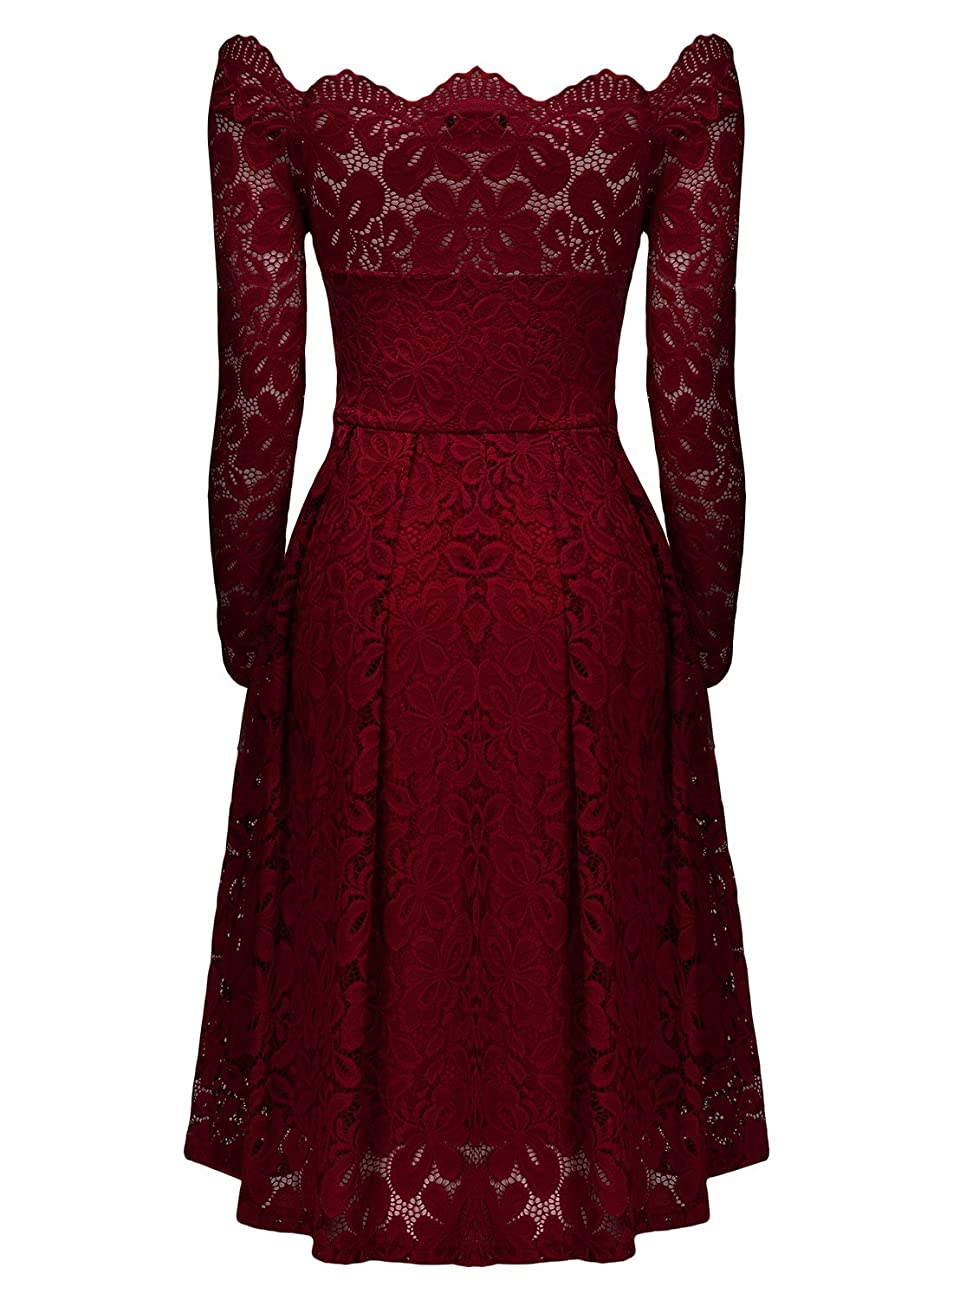 MissMay Women's Vintage Floral Lace Long Sleeve Boat Neck Cocktail Formal Swing Dress 3